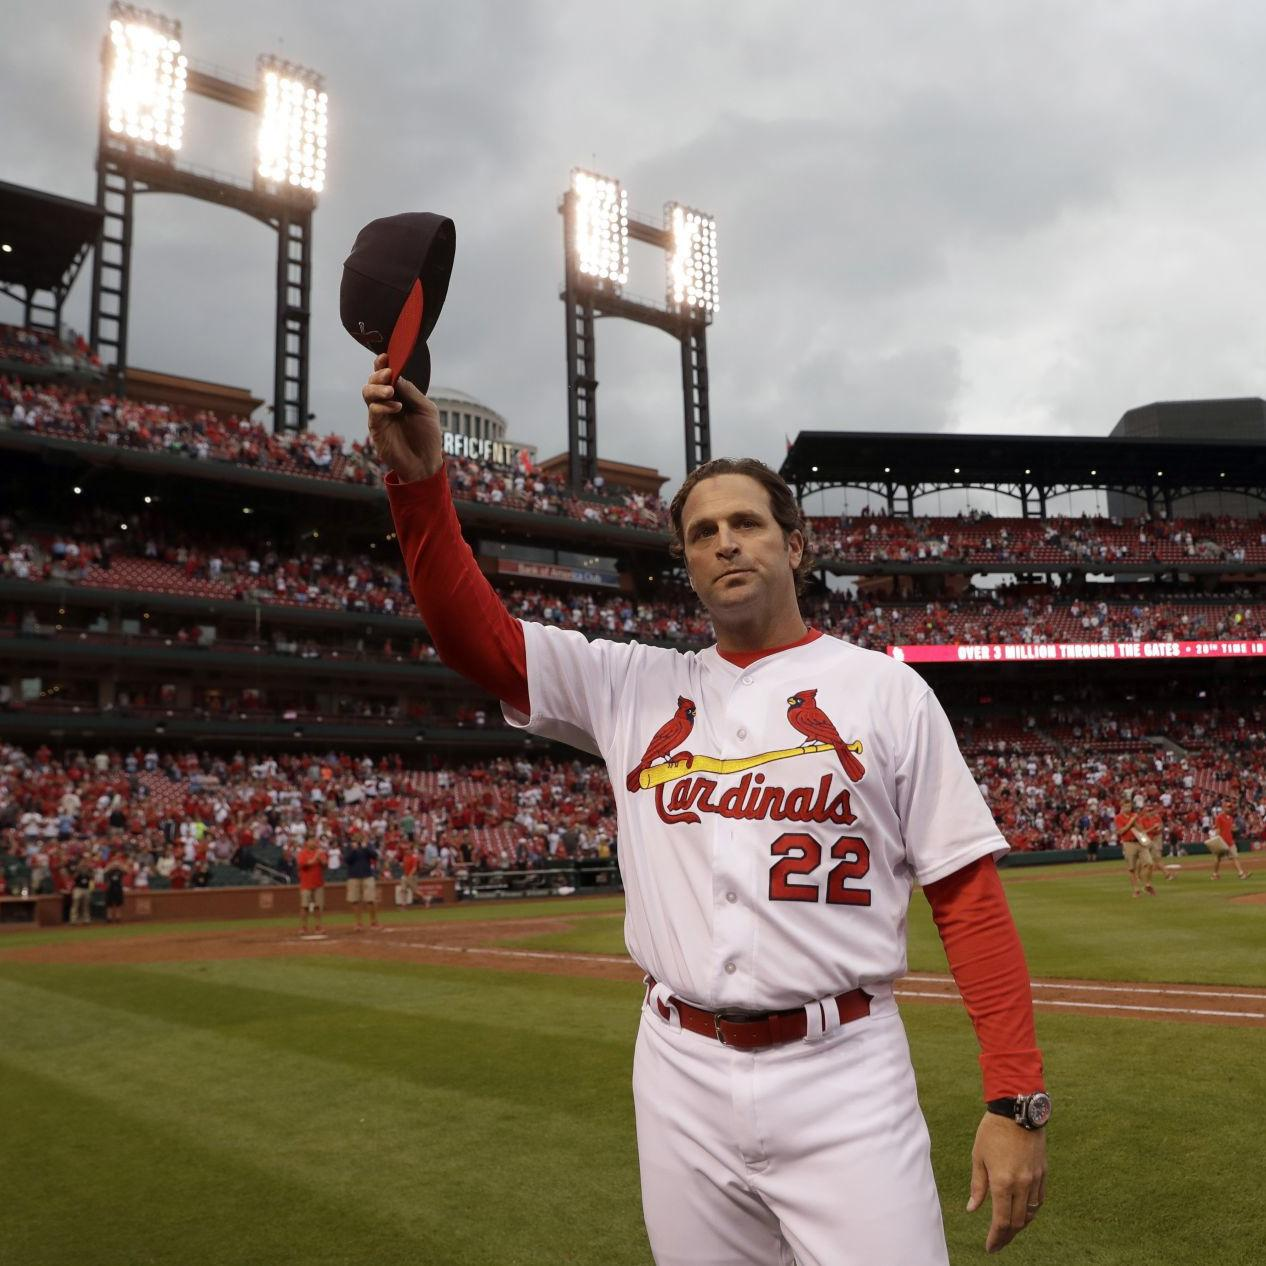 Updated) Matheny takes high road, accepts blame for